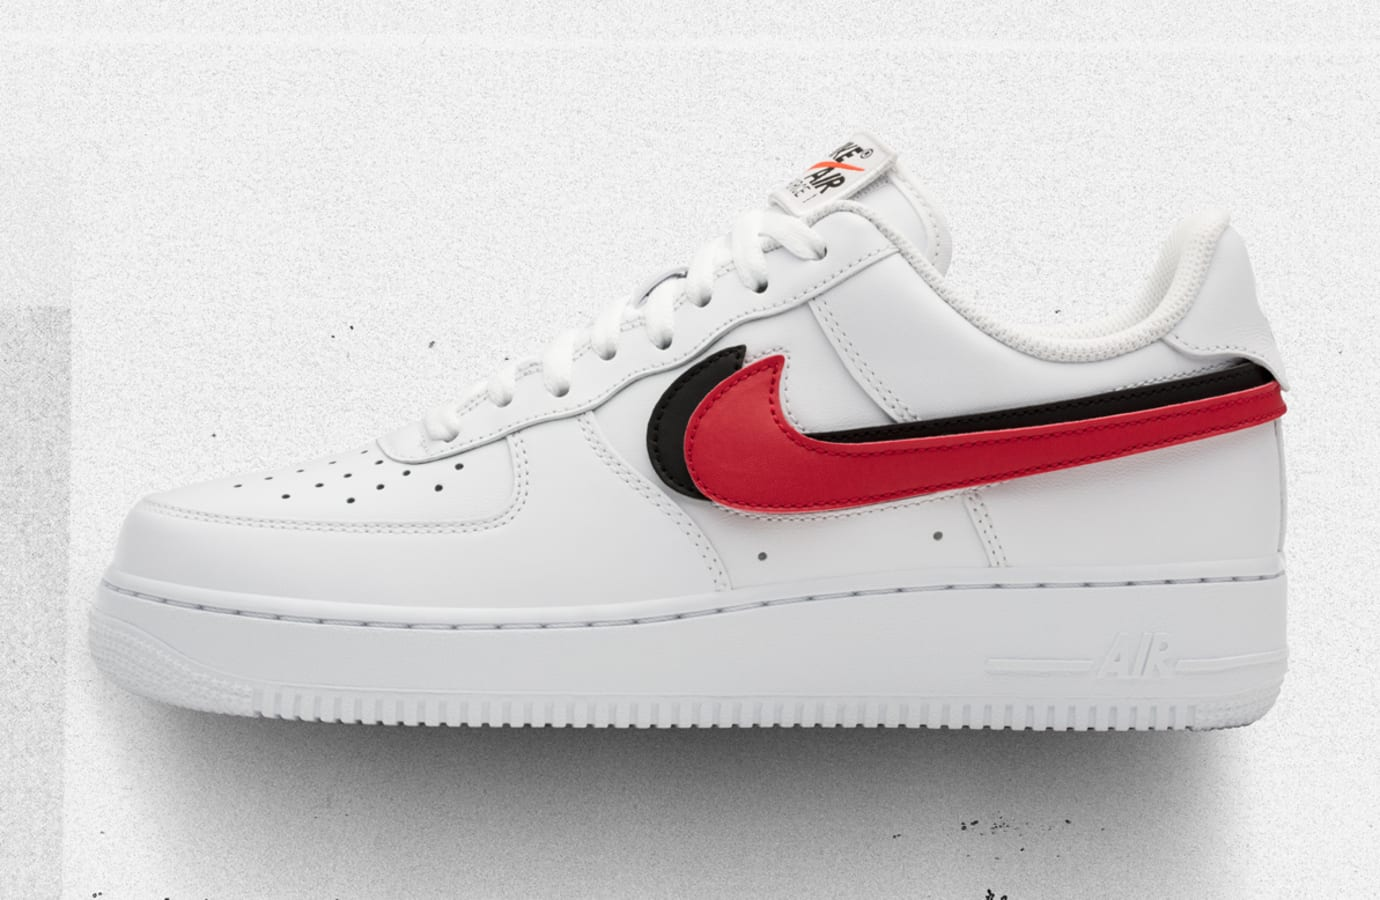 reputable site e2e09 1793f Nike Air Force 1 Low Swoosh Pack AH8462-002 101 102 | Sole ...